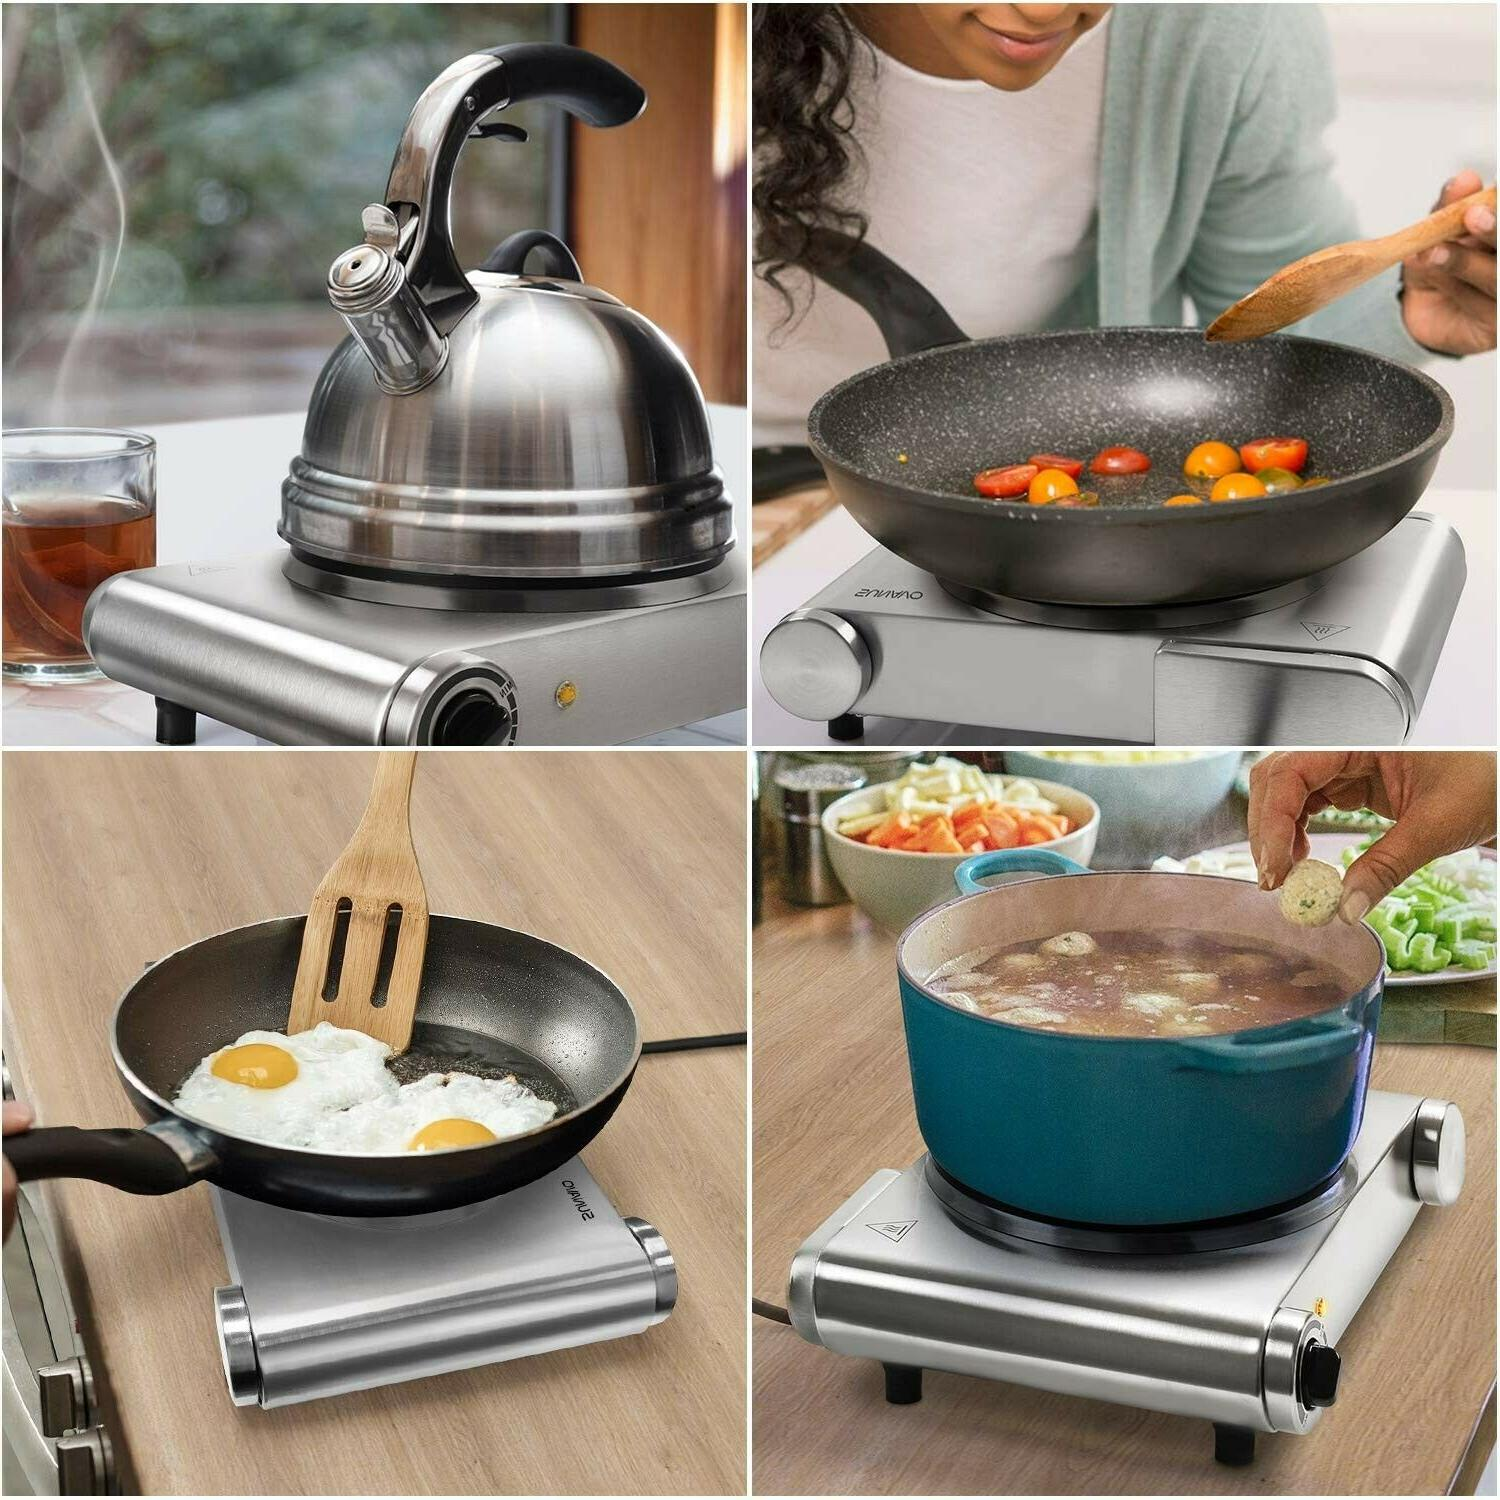 Hot Hob for Cooking